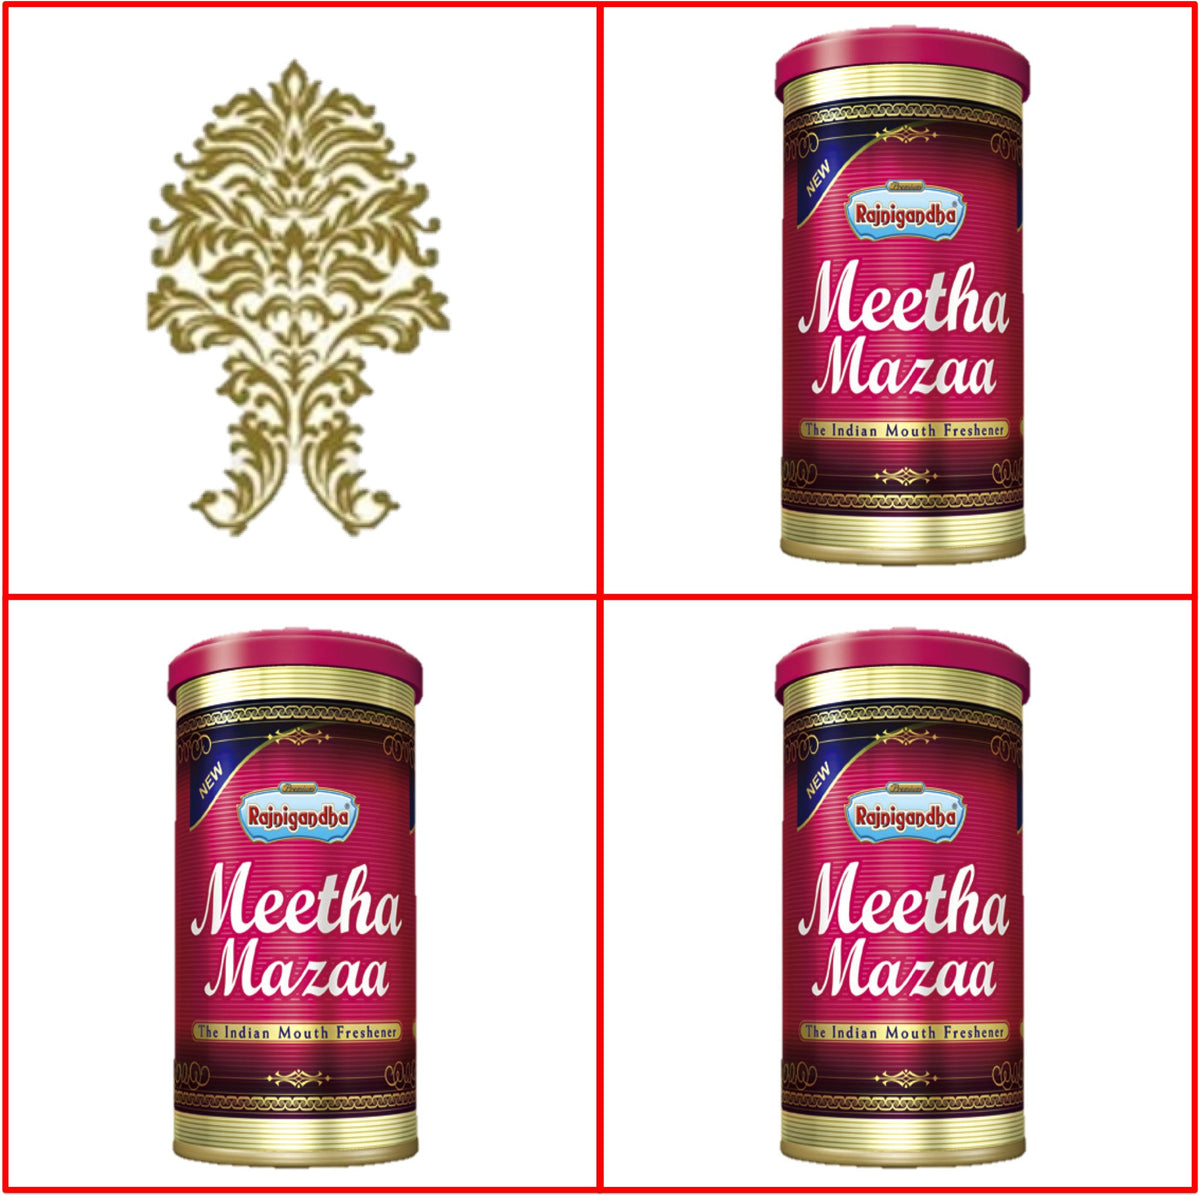 Three (3) Cans 50g  Meetha Mazaa Export Quality July 2017